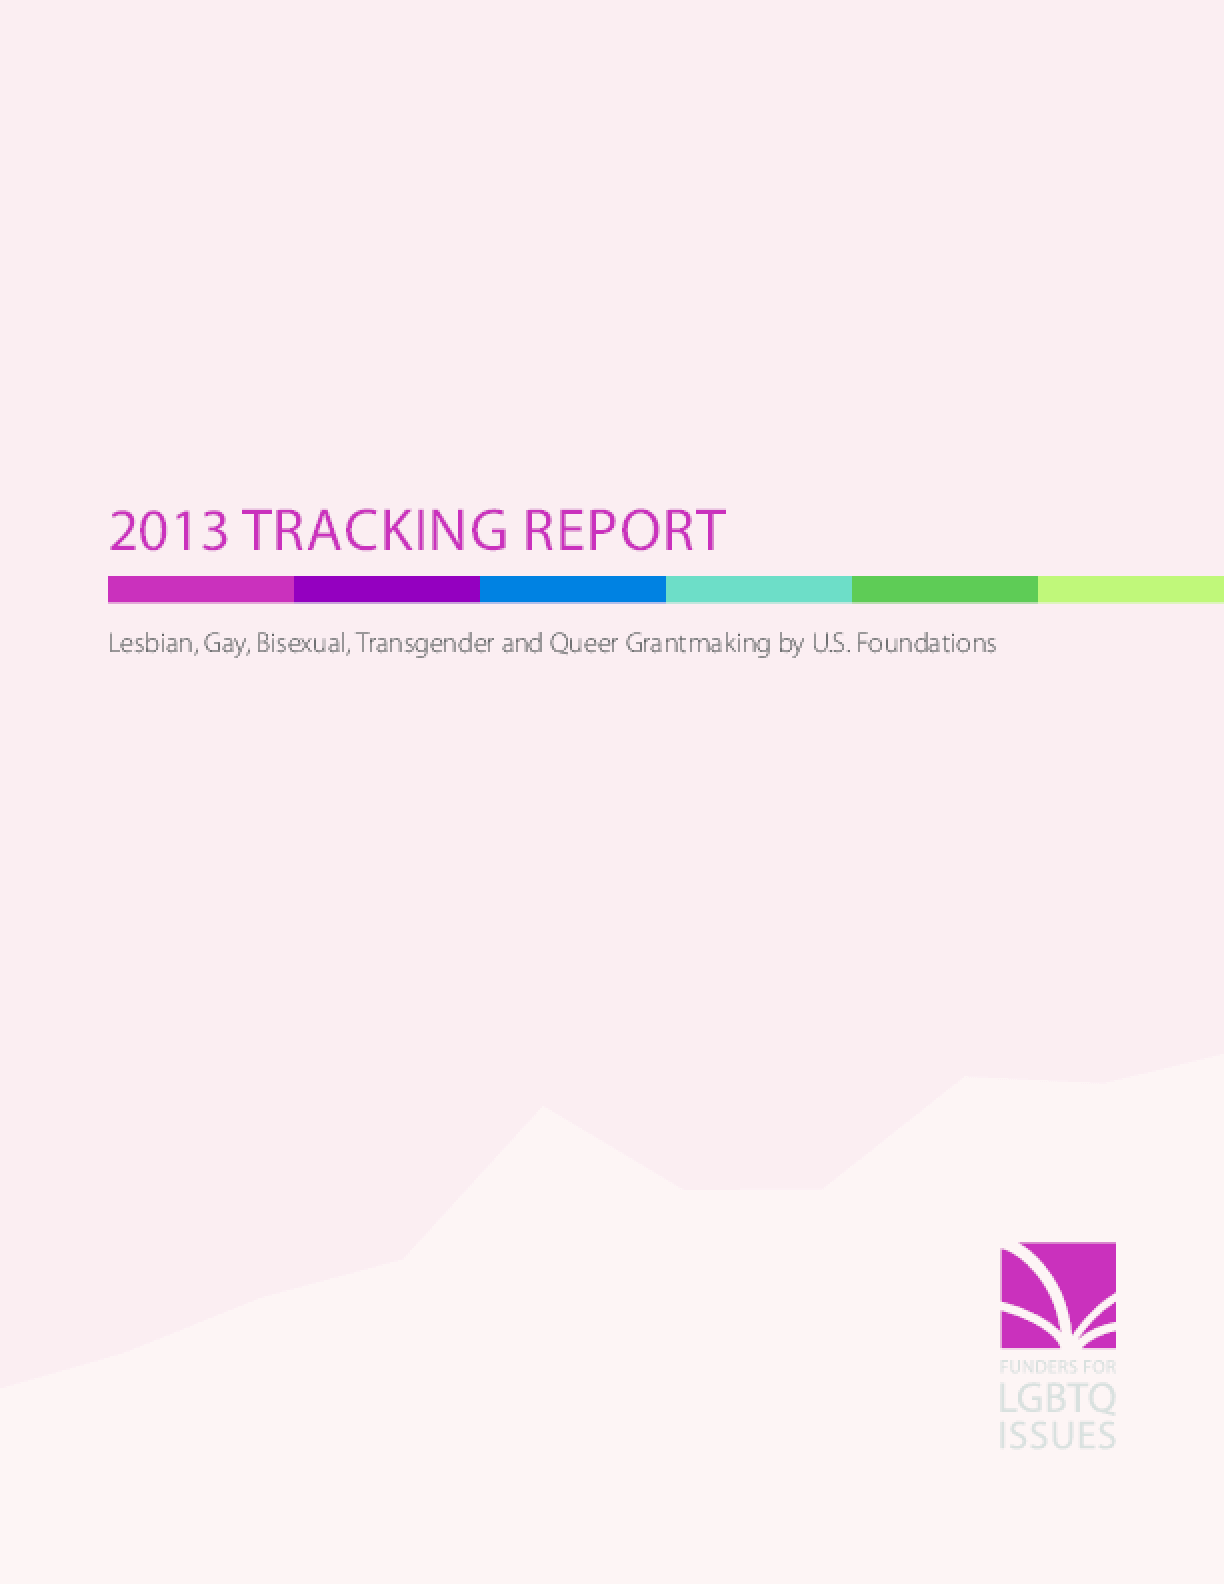 2013 Tracking Report: Lesbian, Gay, Bisexual, Transgender and Queer Grantmaking by U.S. Foundations